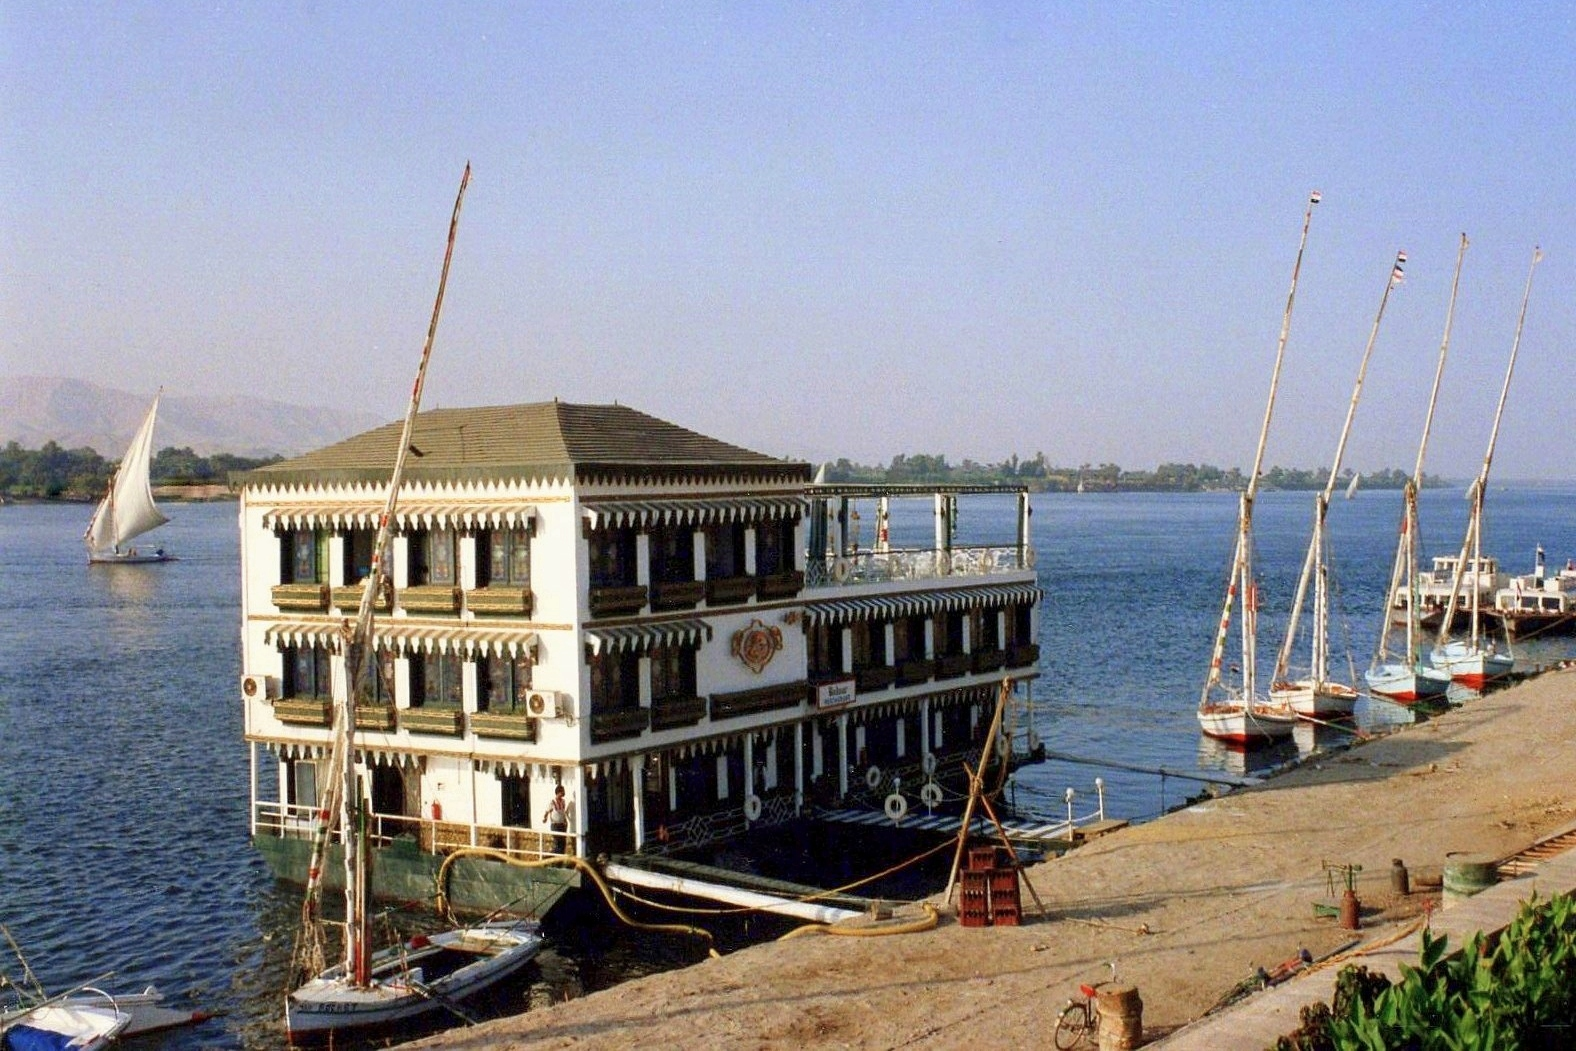 The floating restaurant Bodour, moored just upriver from the Winter Palace in Luxor, was one of their favorite places to dine, with its sumptuous Belle Epoque furnishings